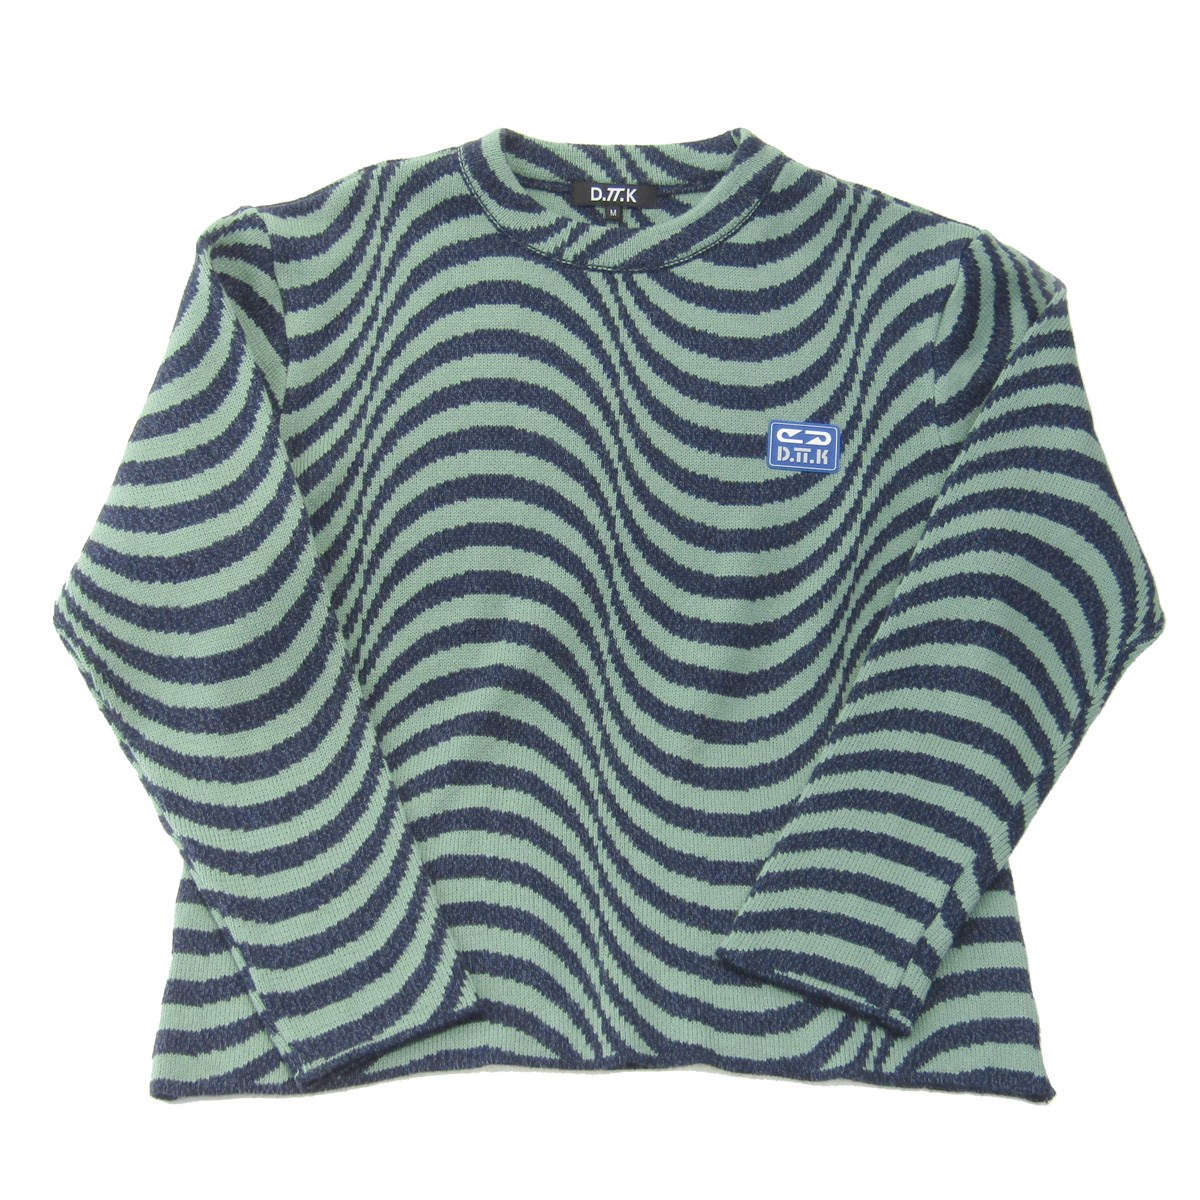 【中古】D.TT.K 2019AW RANDOM LINE KNIT TOPS 【098993】 【KIND1884】